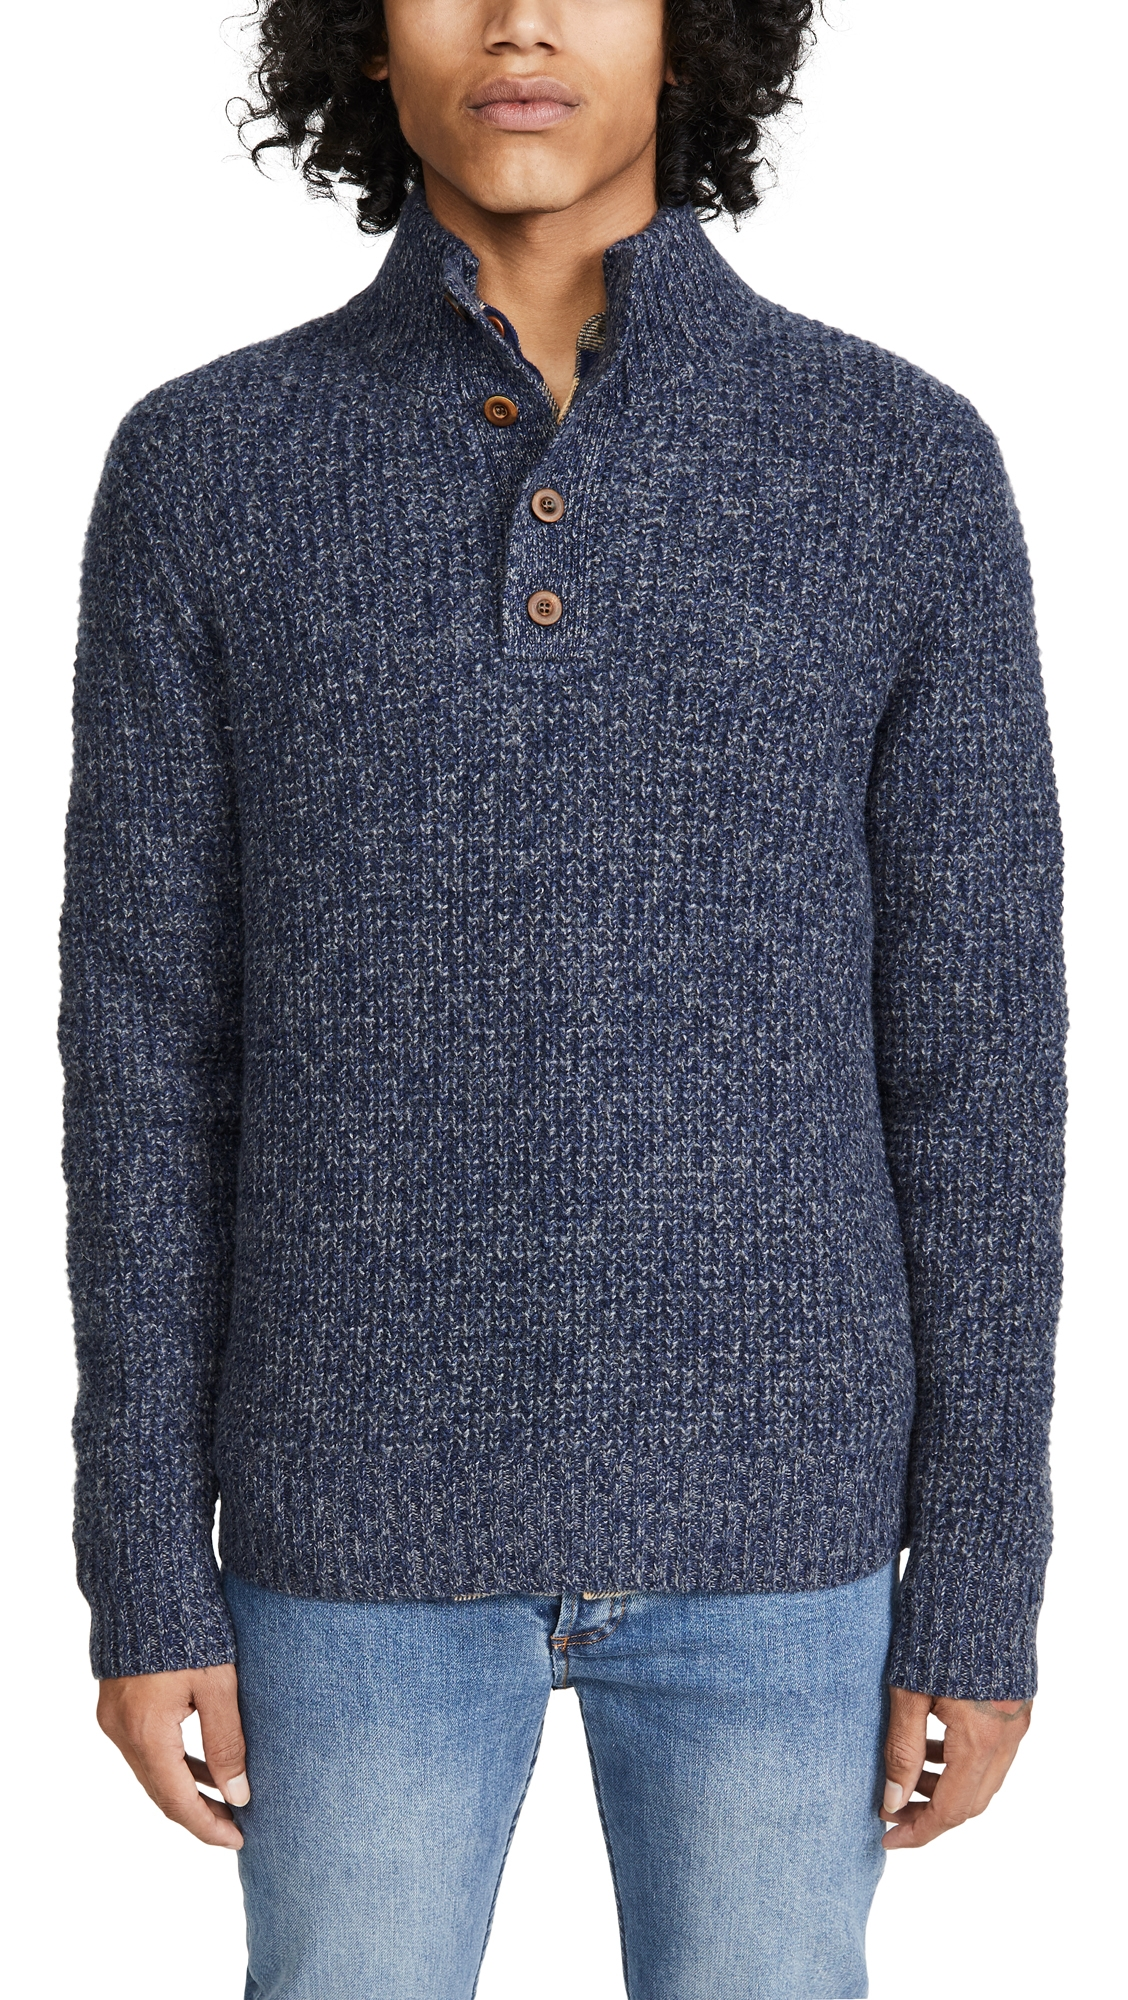 Faherty Sweaters CASHMERE MOCKNECK BUTTON SWEATER